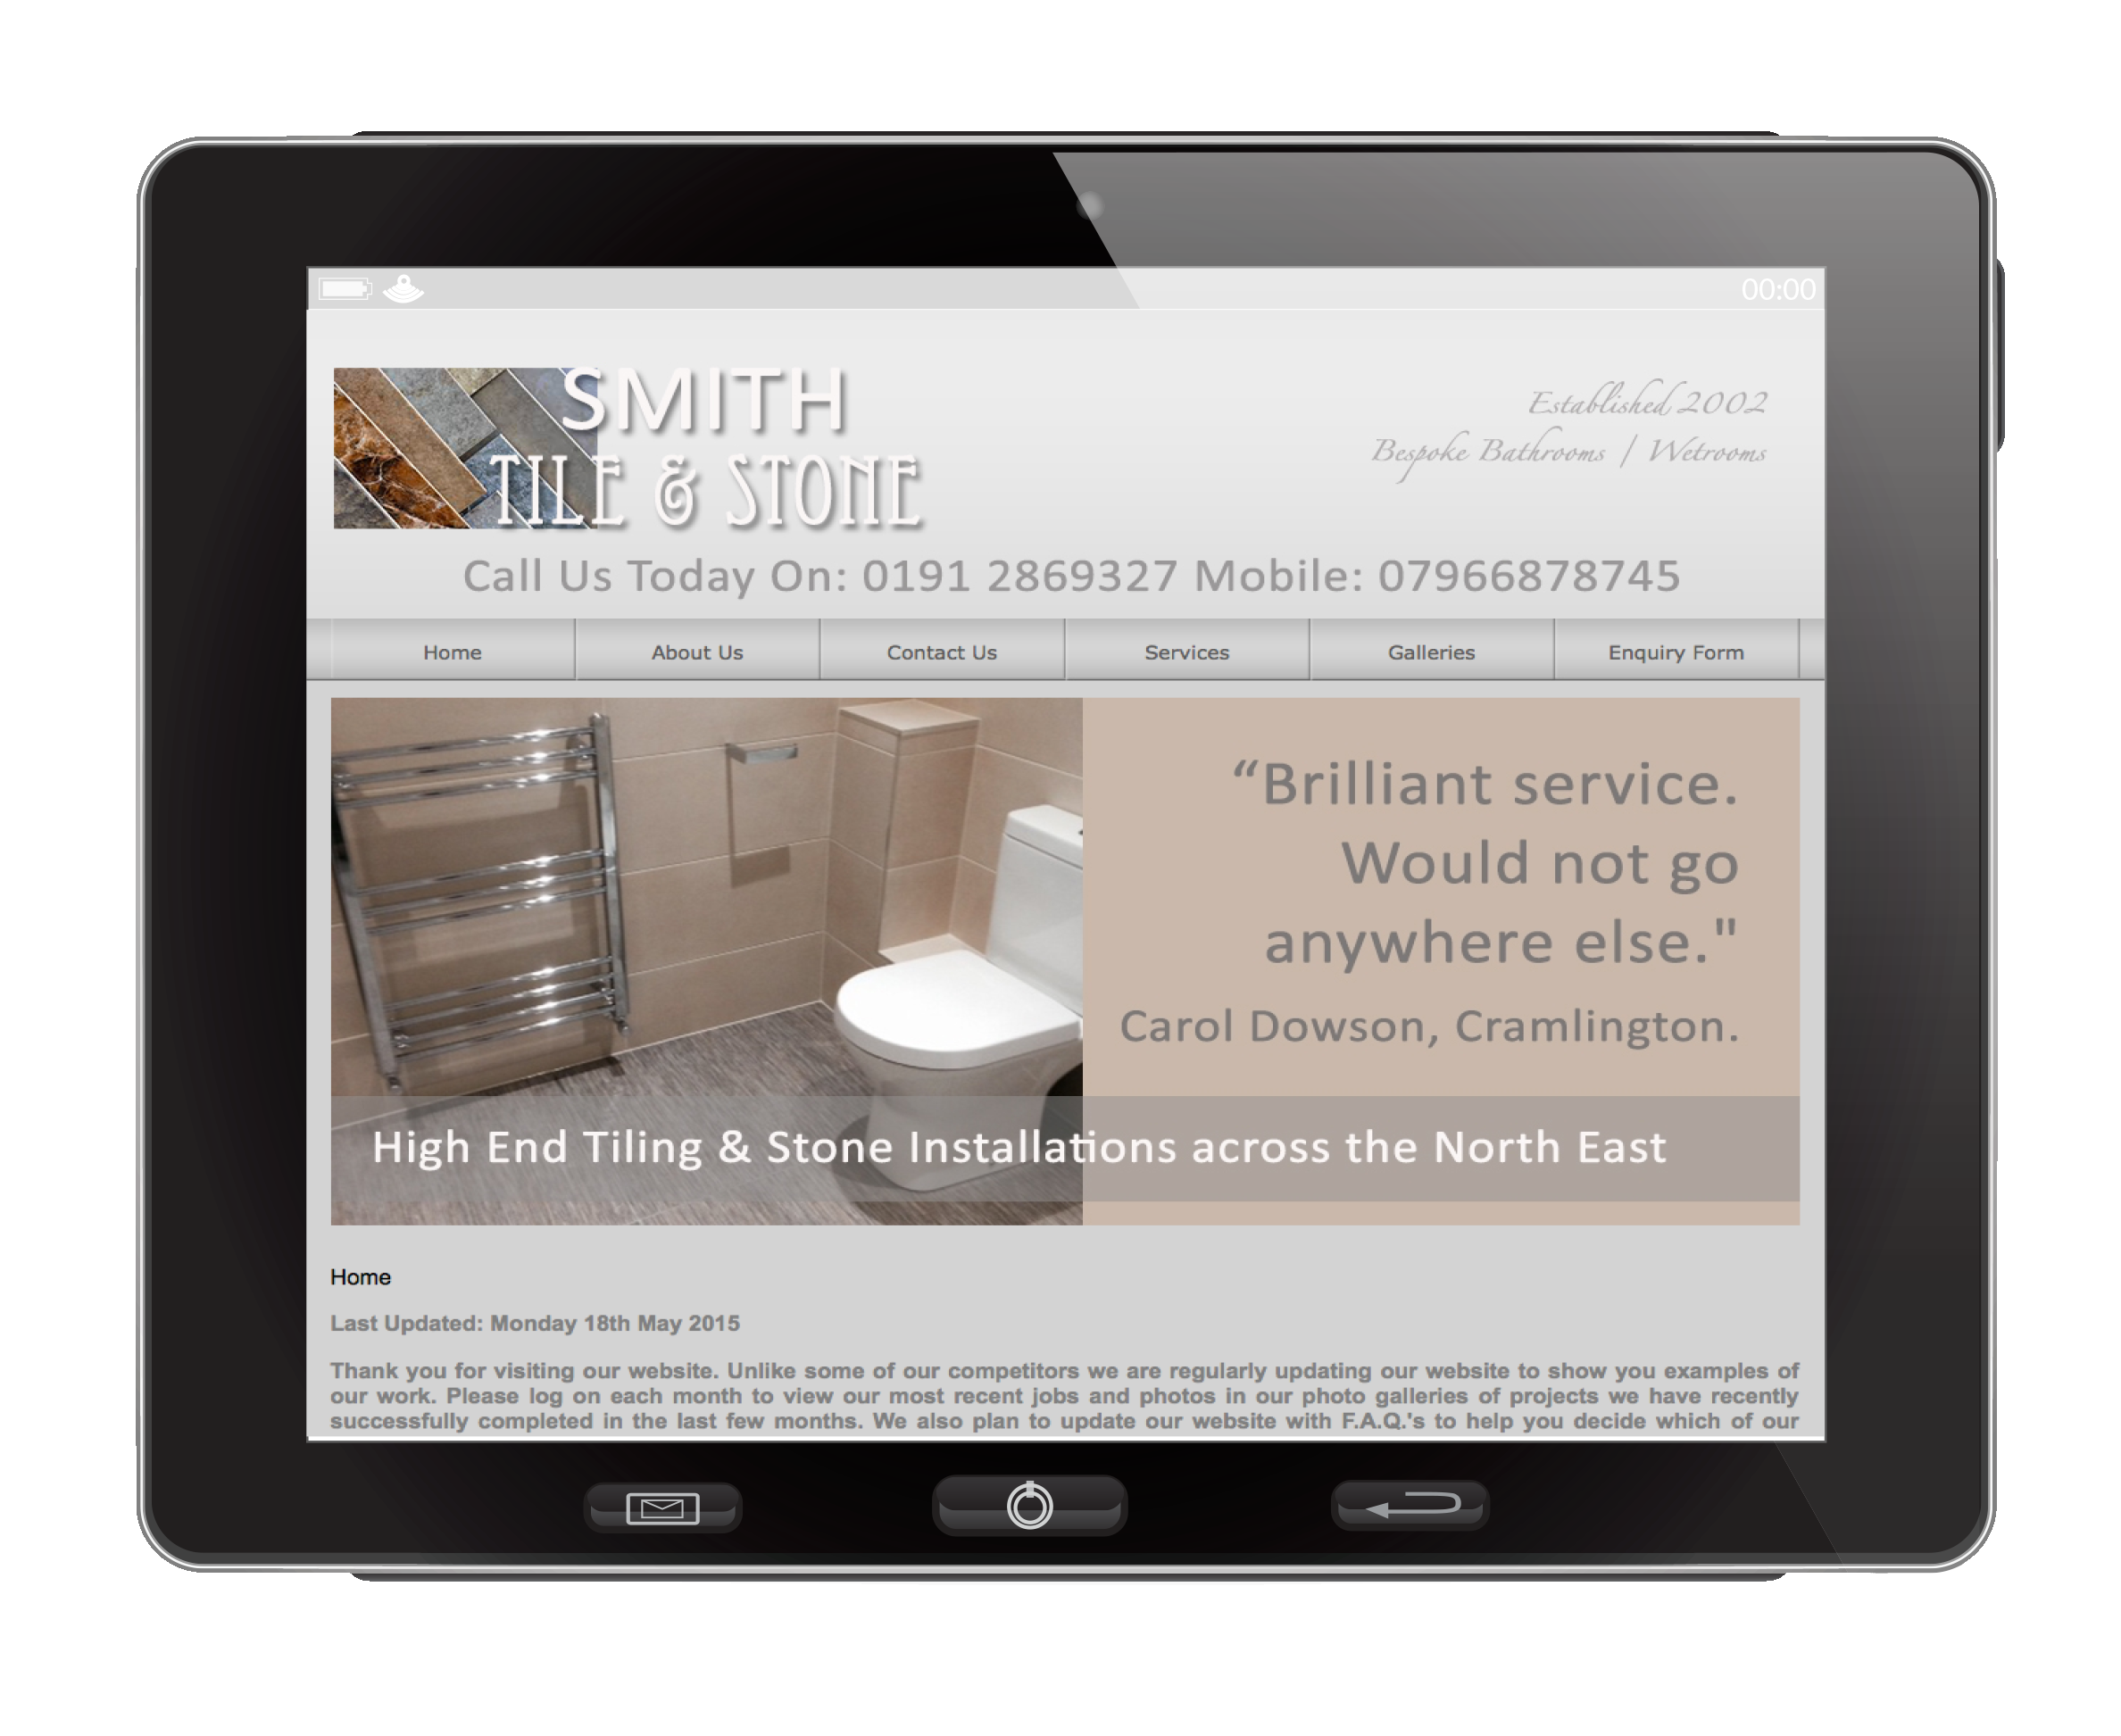 Smith Tile & Stone iPad